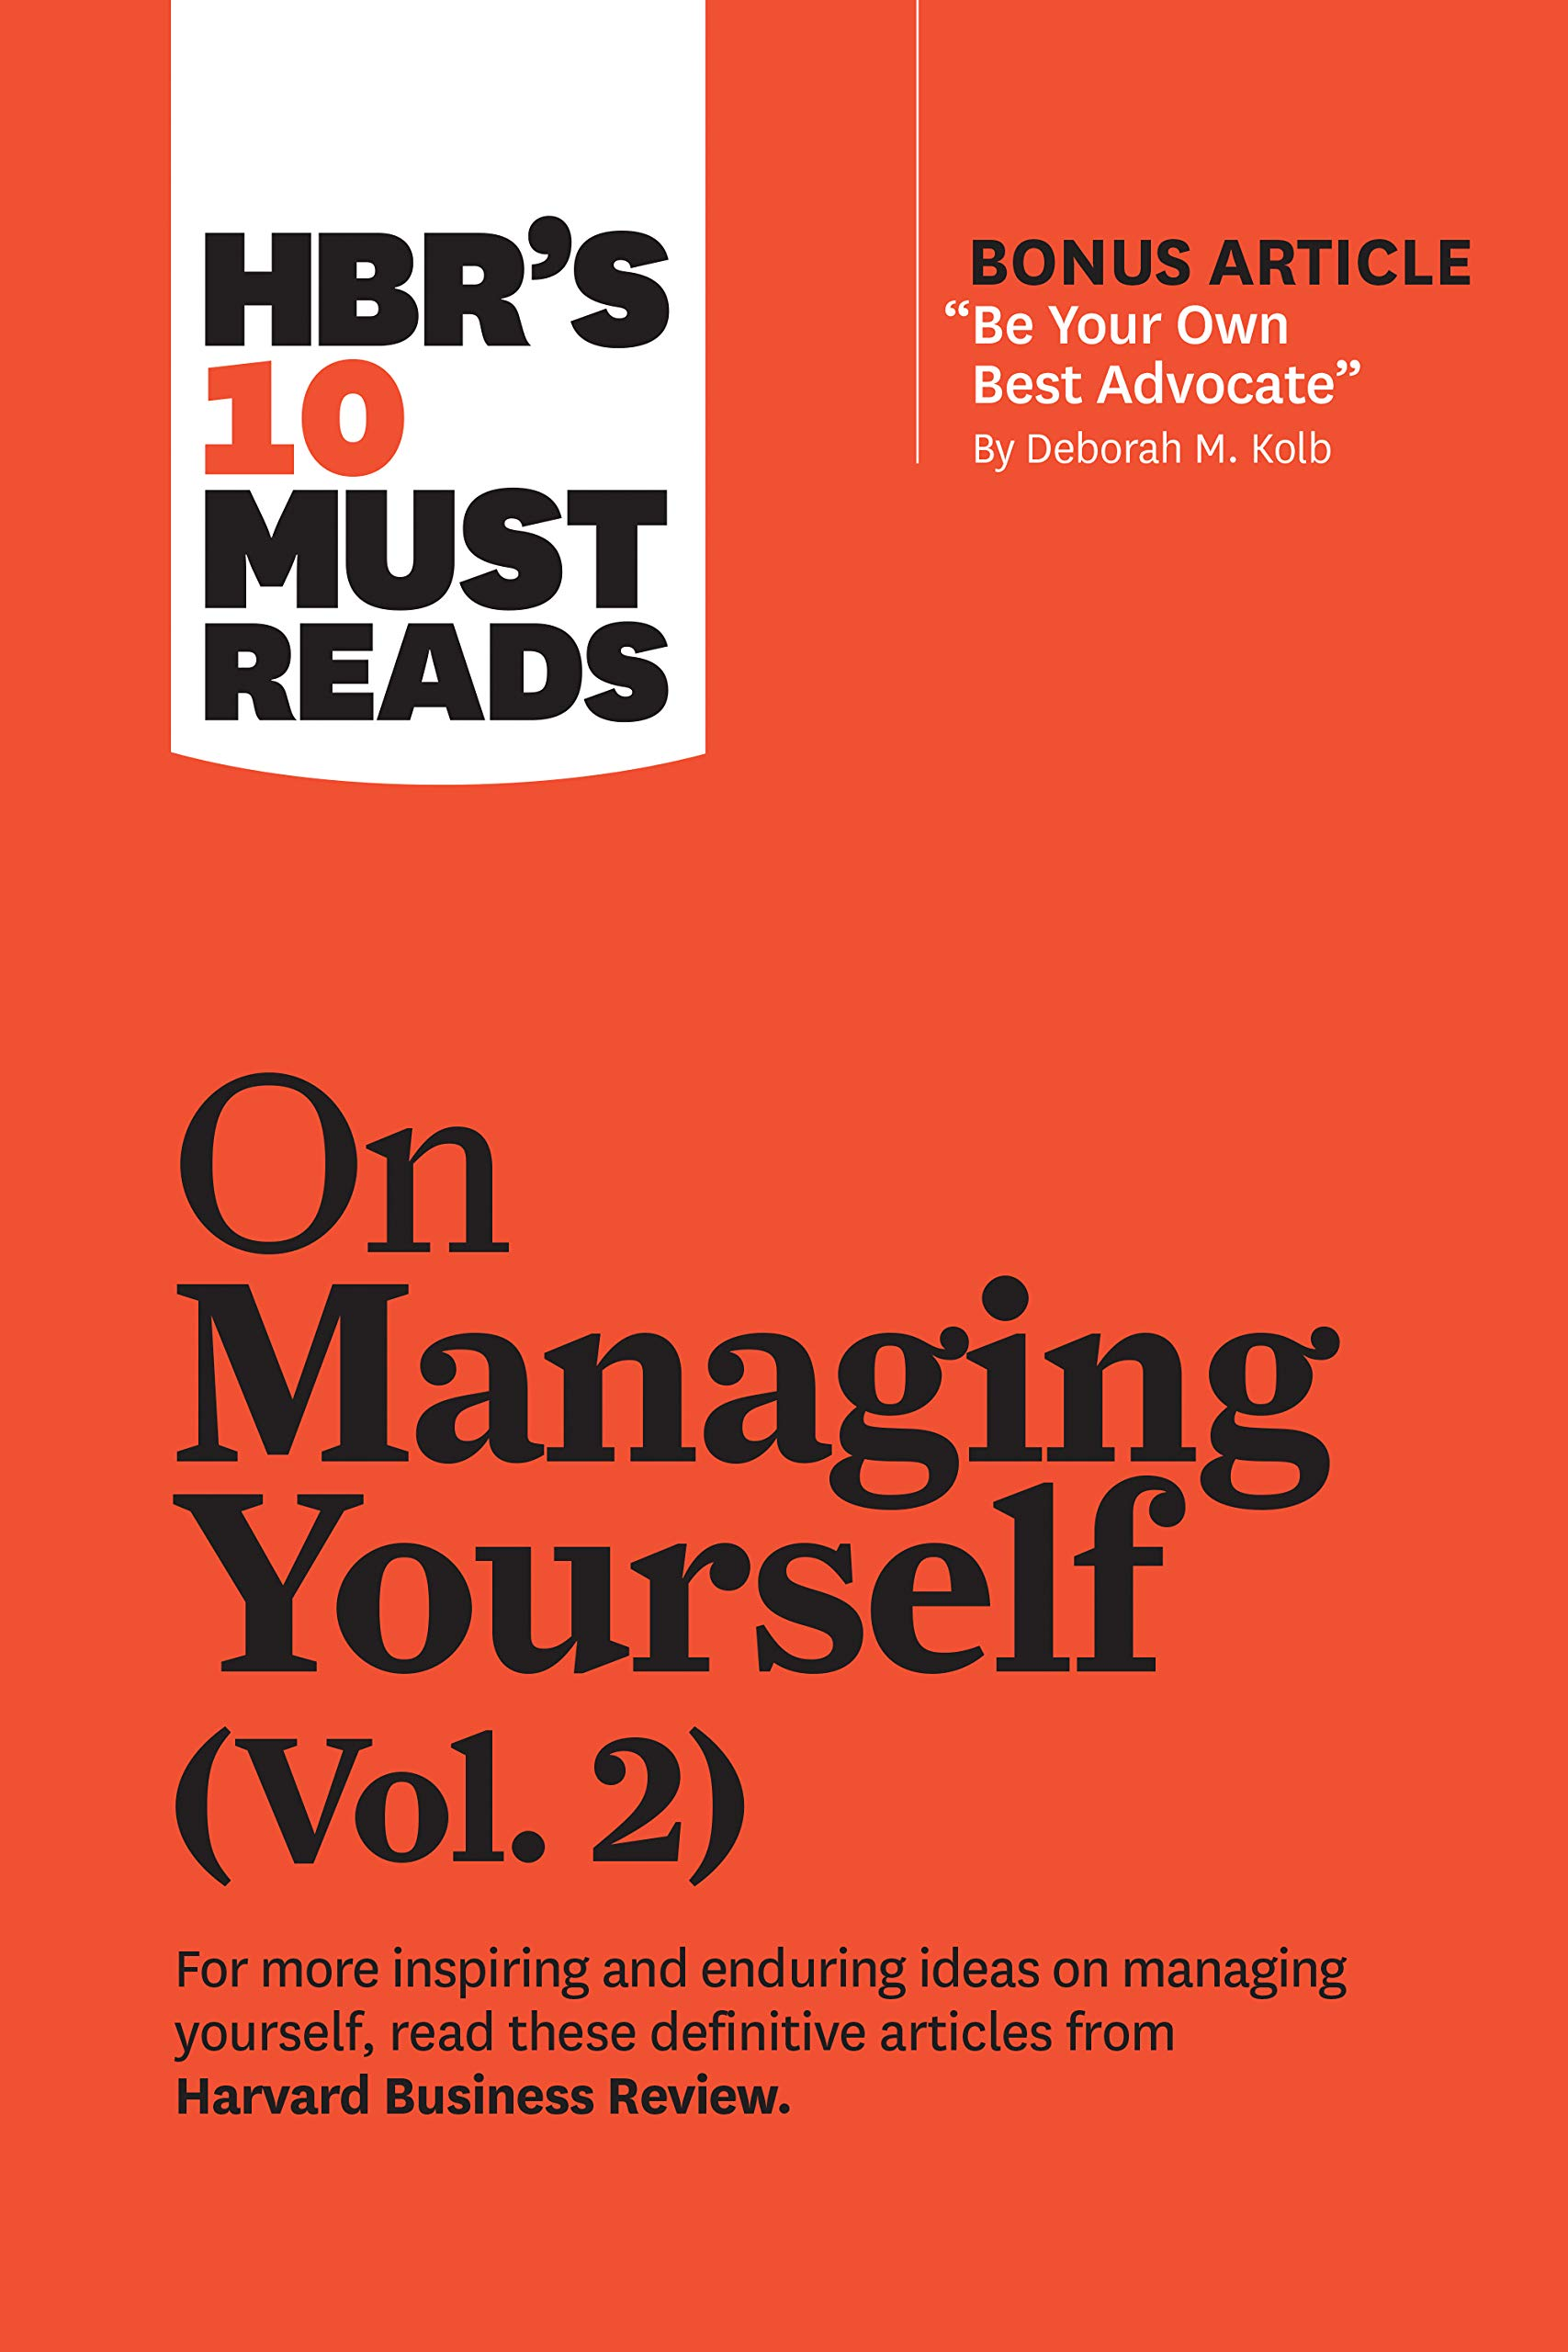 HBR's 10 Must Reads on Managing Yourself 2